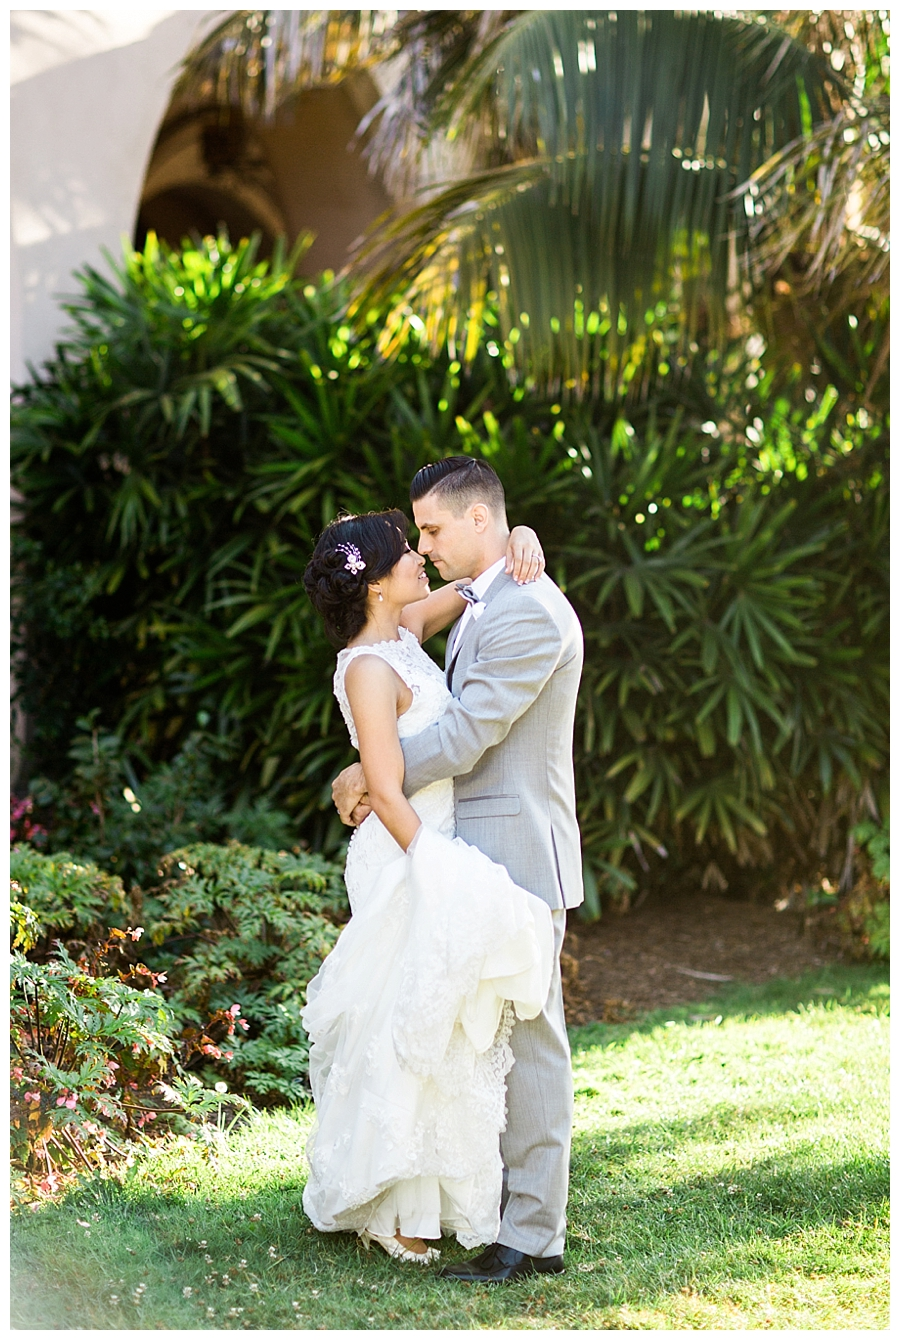 destination fine art wedding photography at Balboa Park in San Diego, California